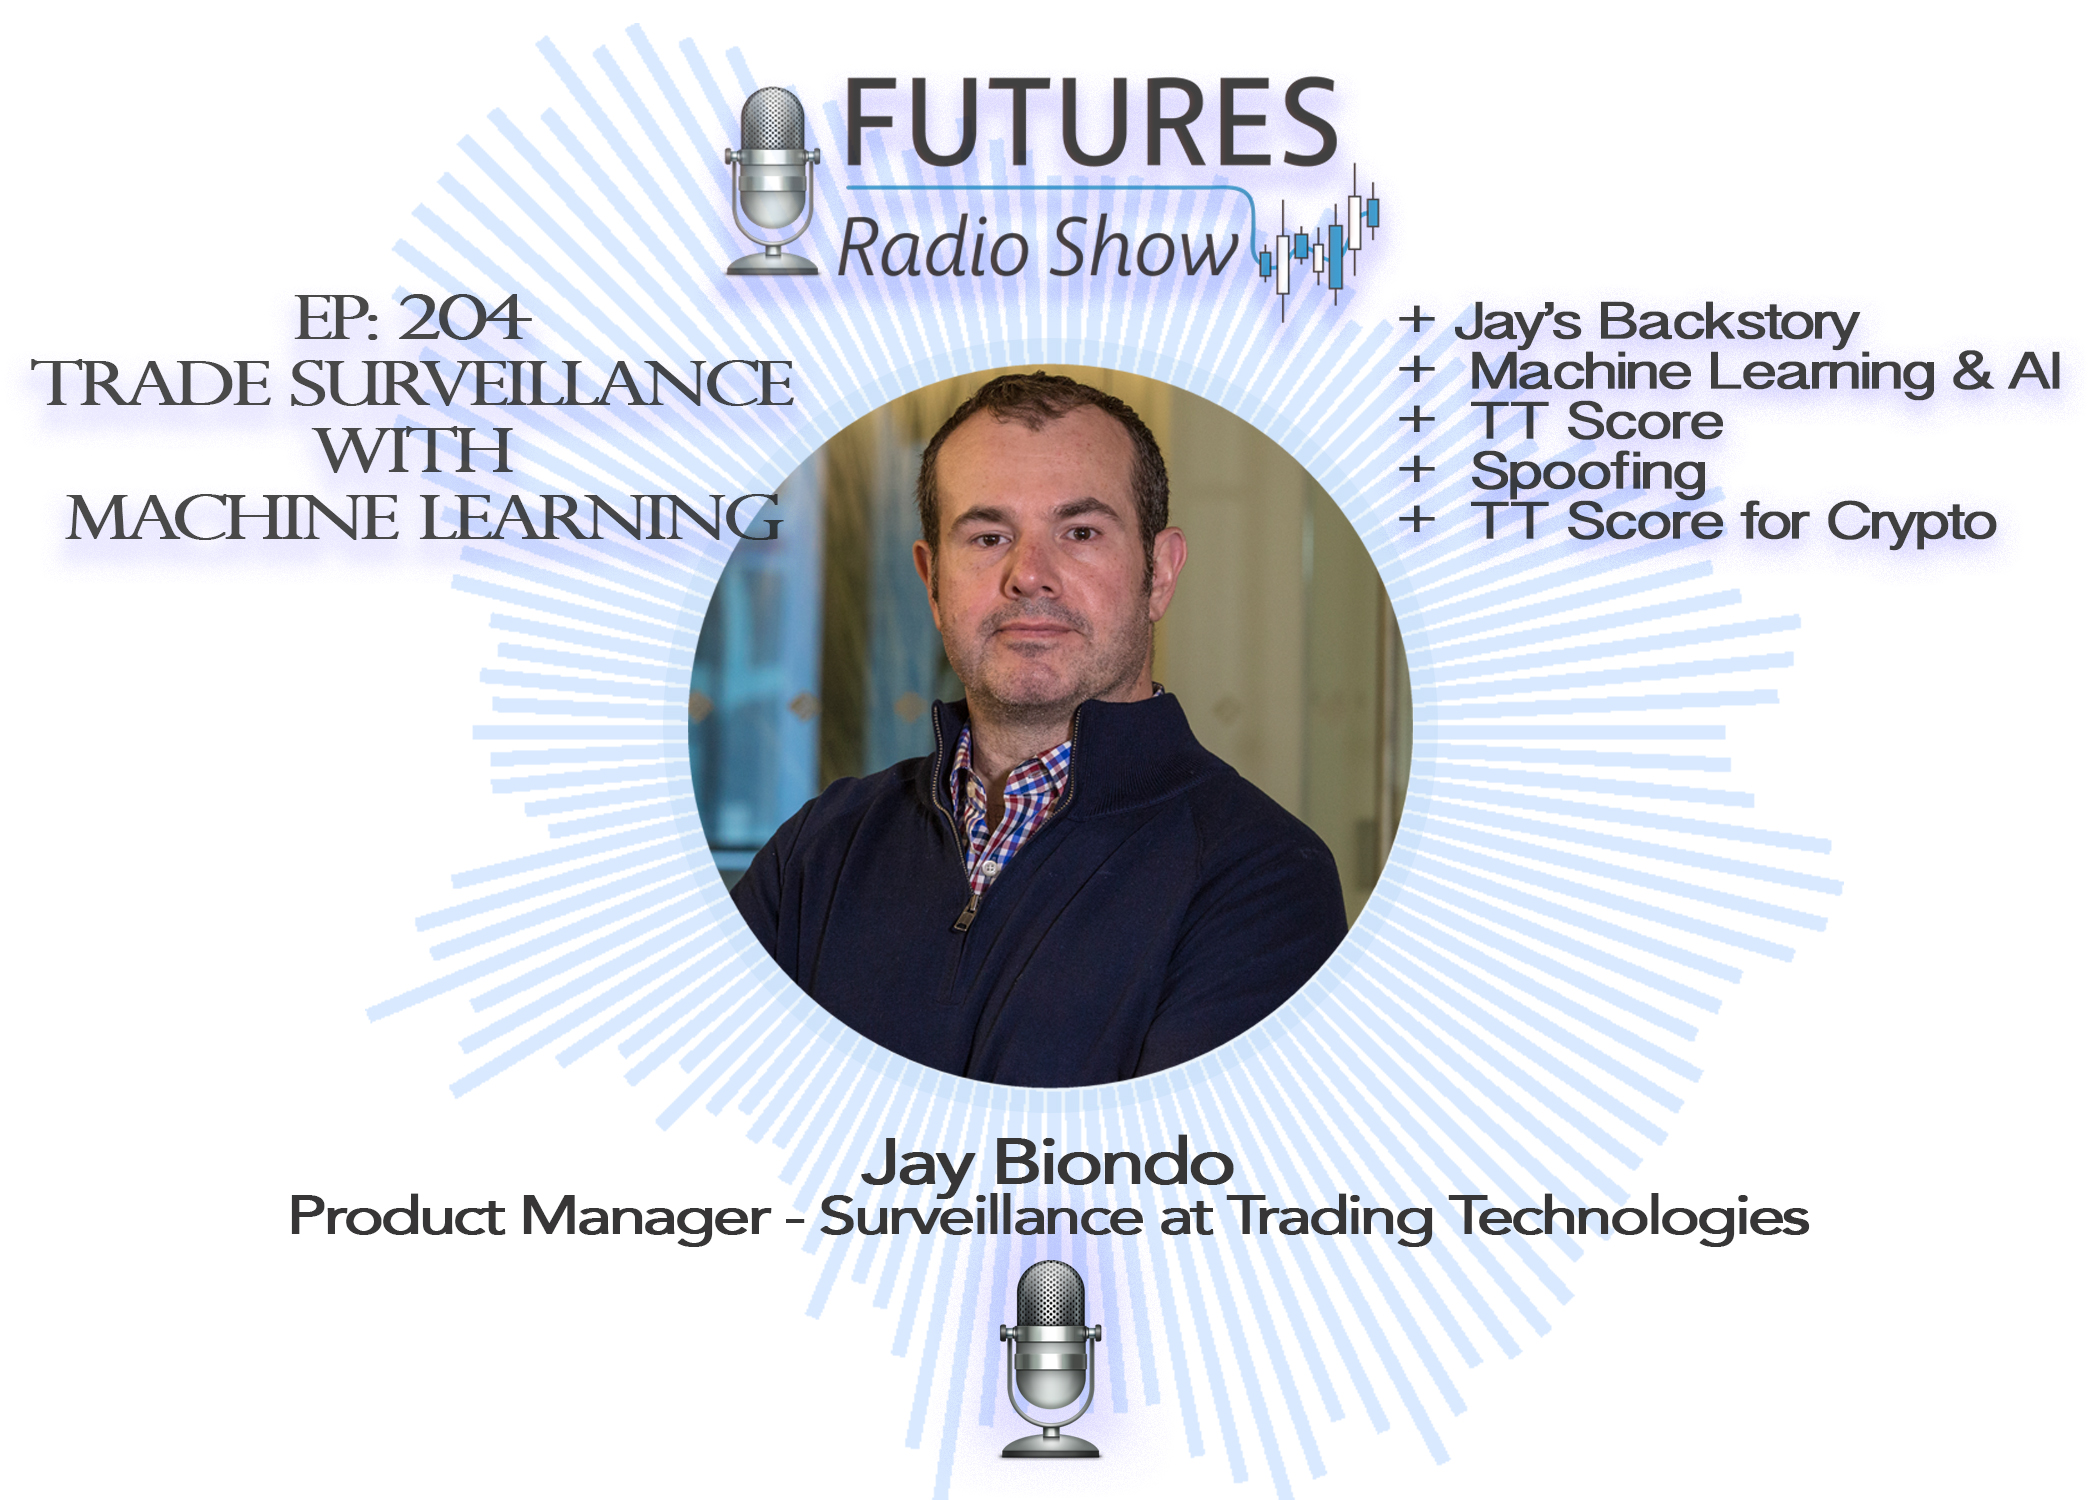 Trade Surveillance with Machine Learning -- Jay Biondo